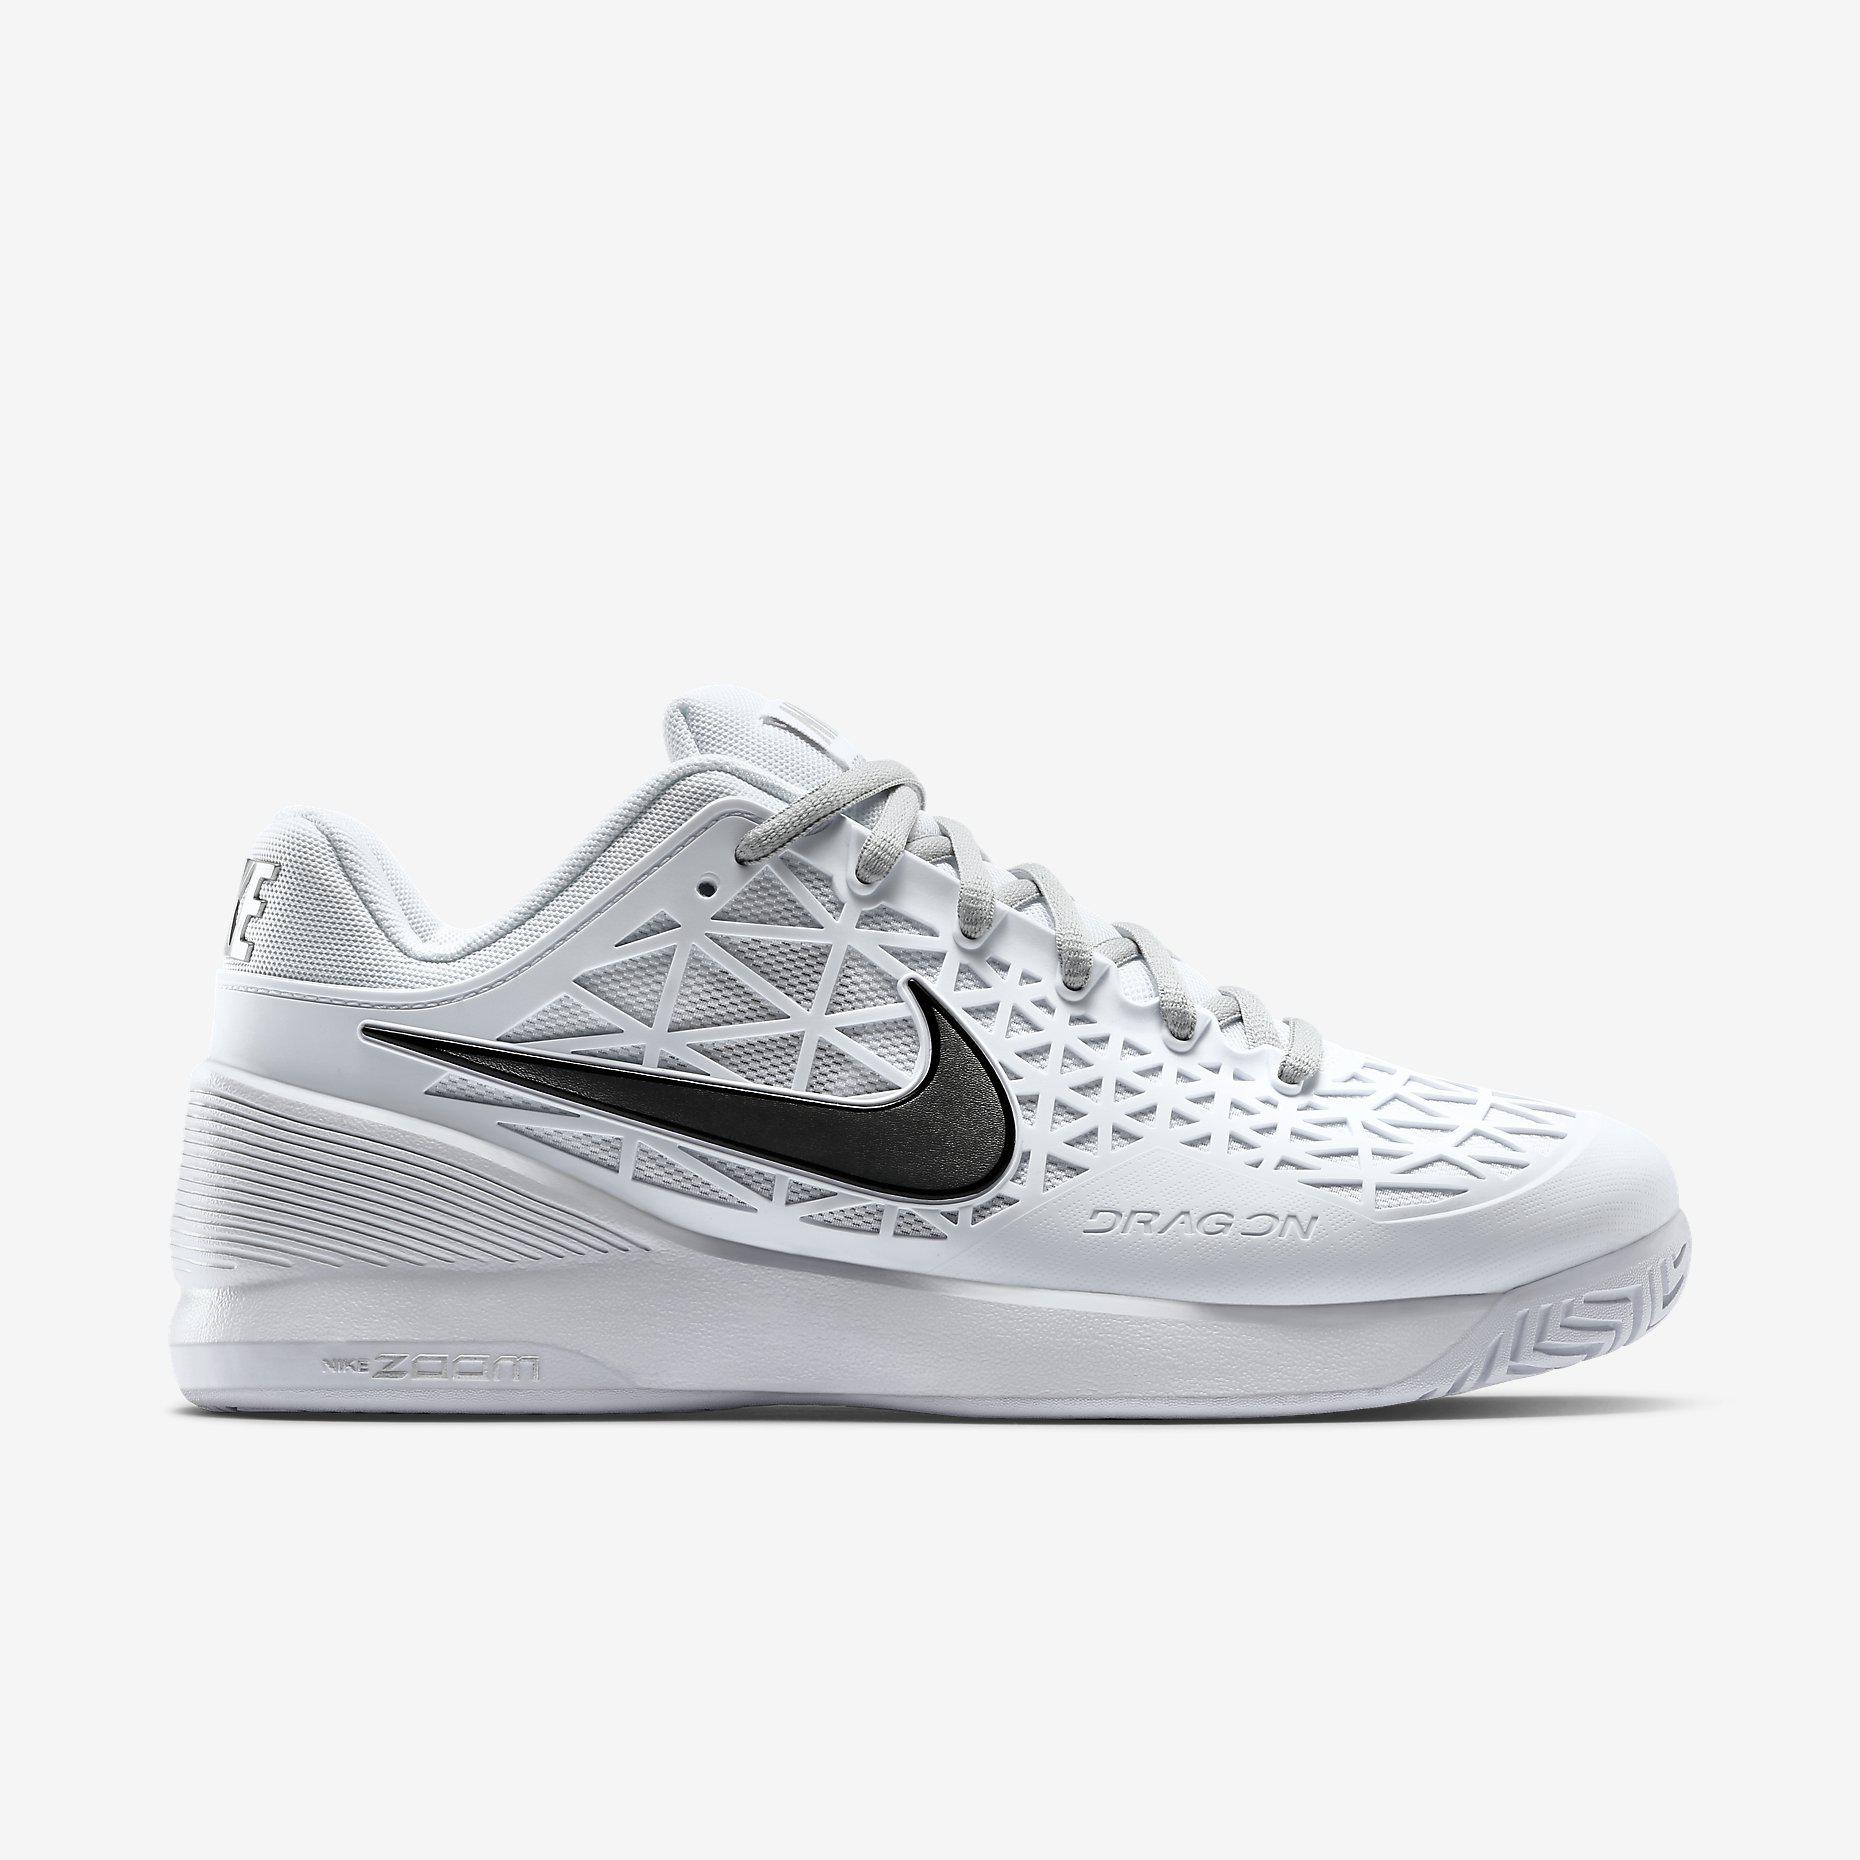 ad5a5628859c Nike Womens Zoom Cage 2 Tennis Shoes - White - Tennisnuts.com